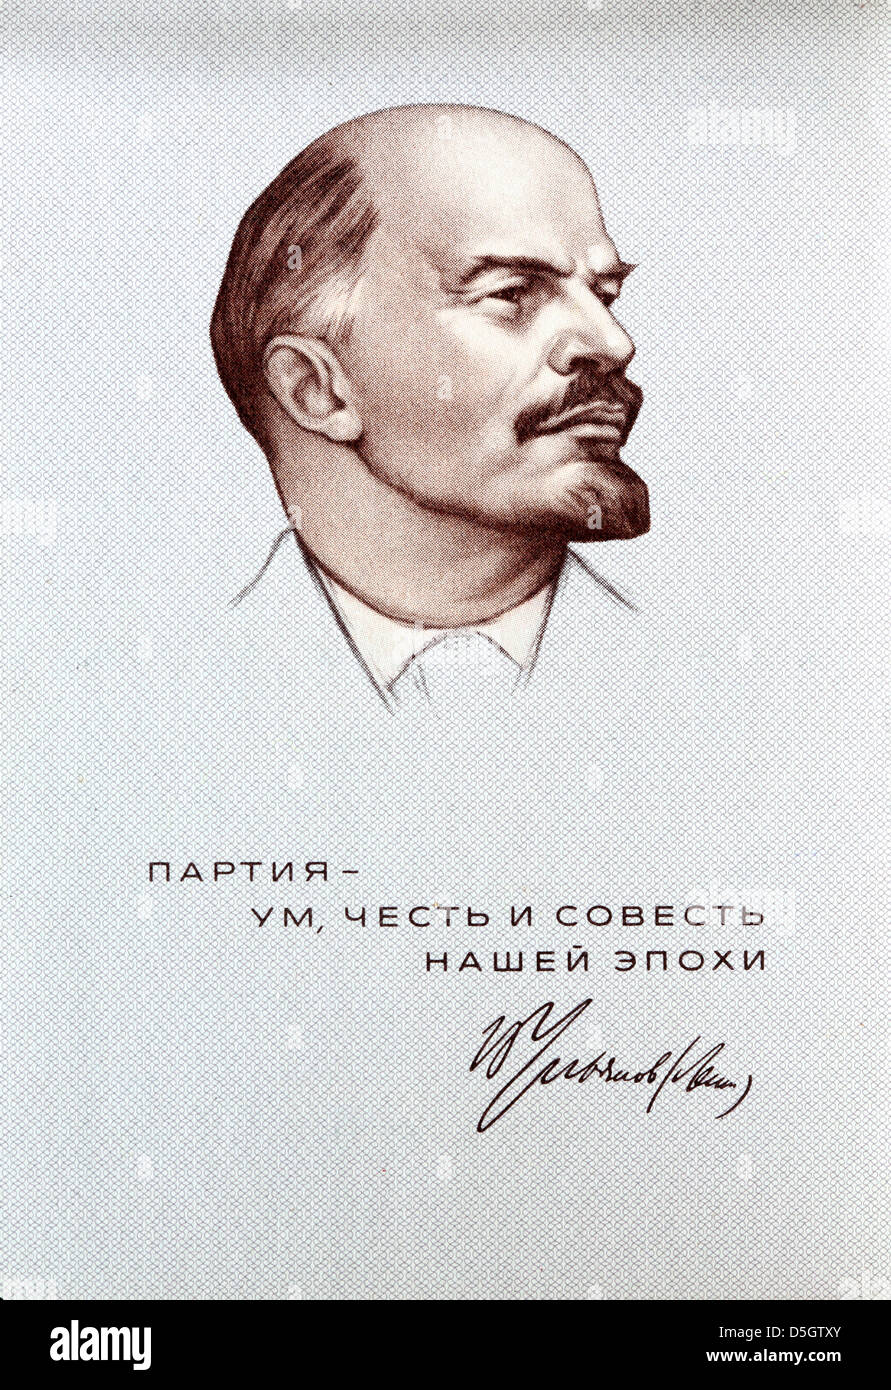 Portrait of Vladimir Lenin from the Communist Party of the Soviet Union membership card, 1973 - Stock Image